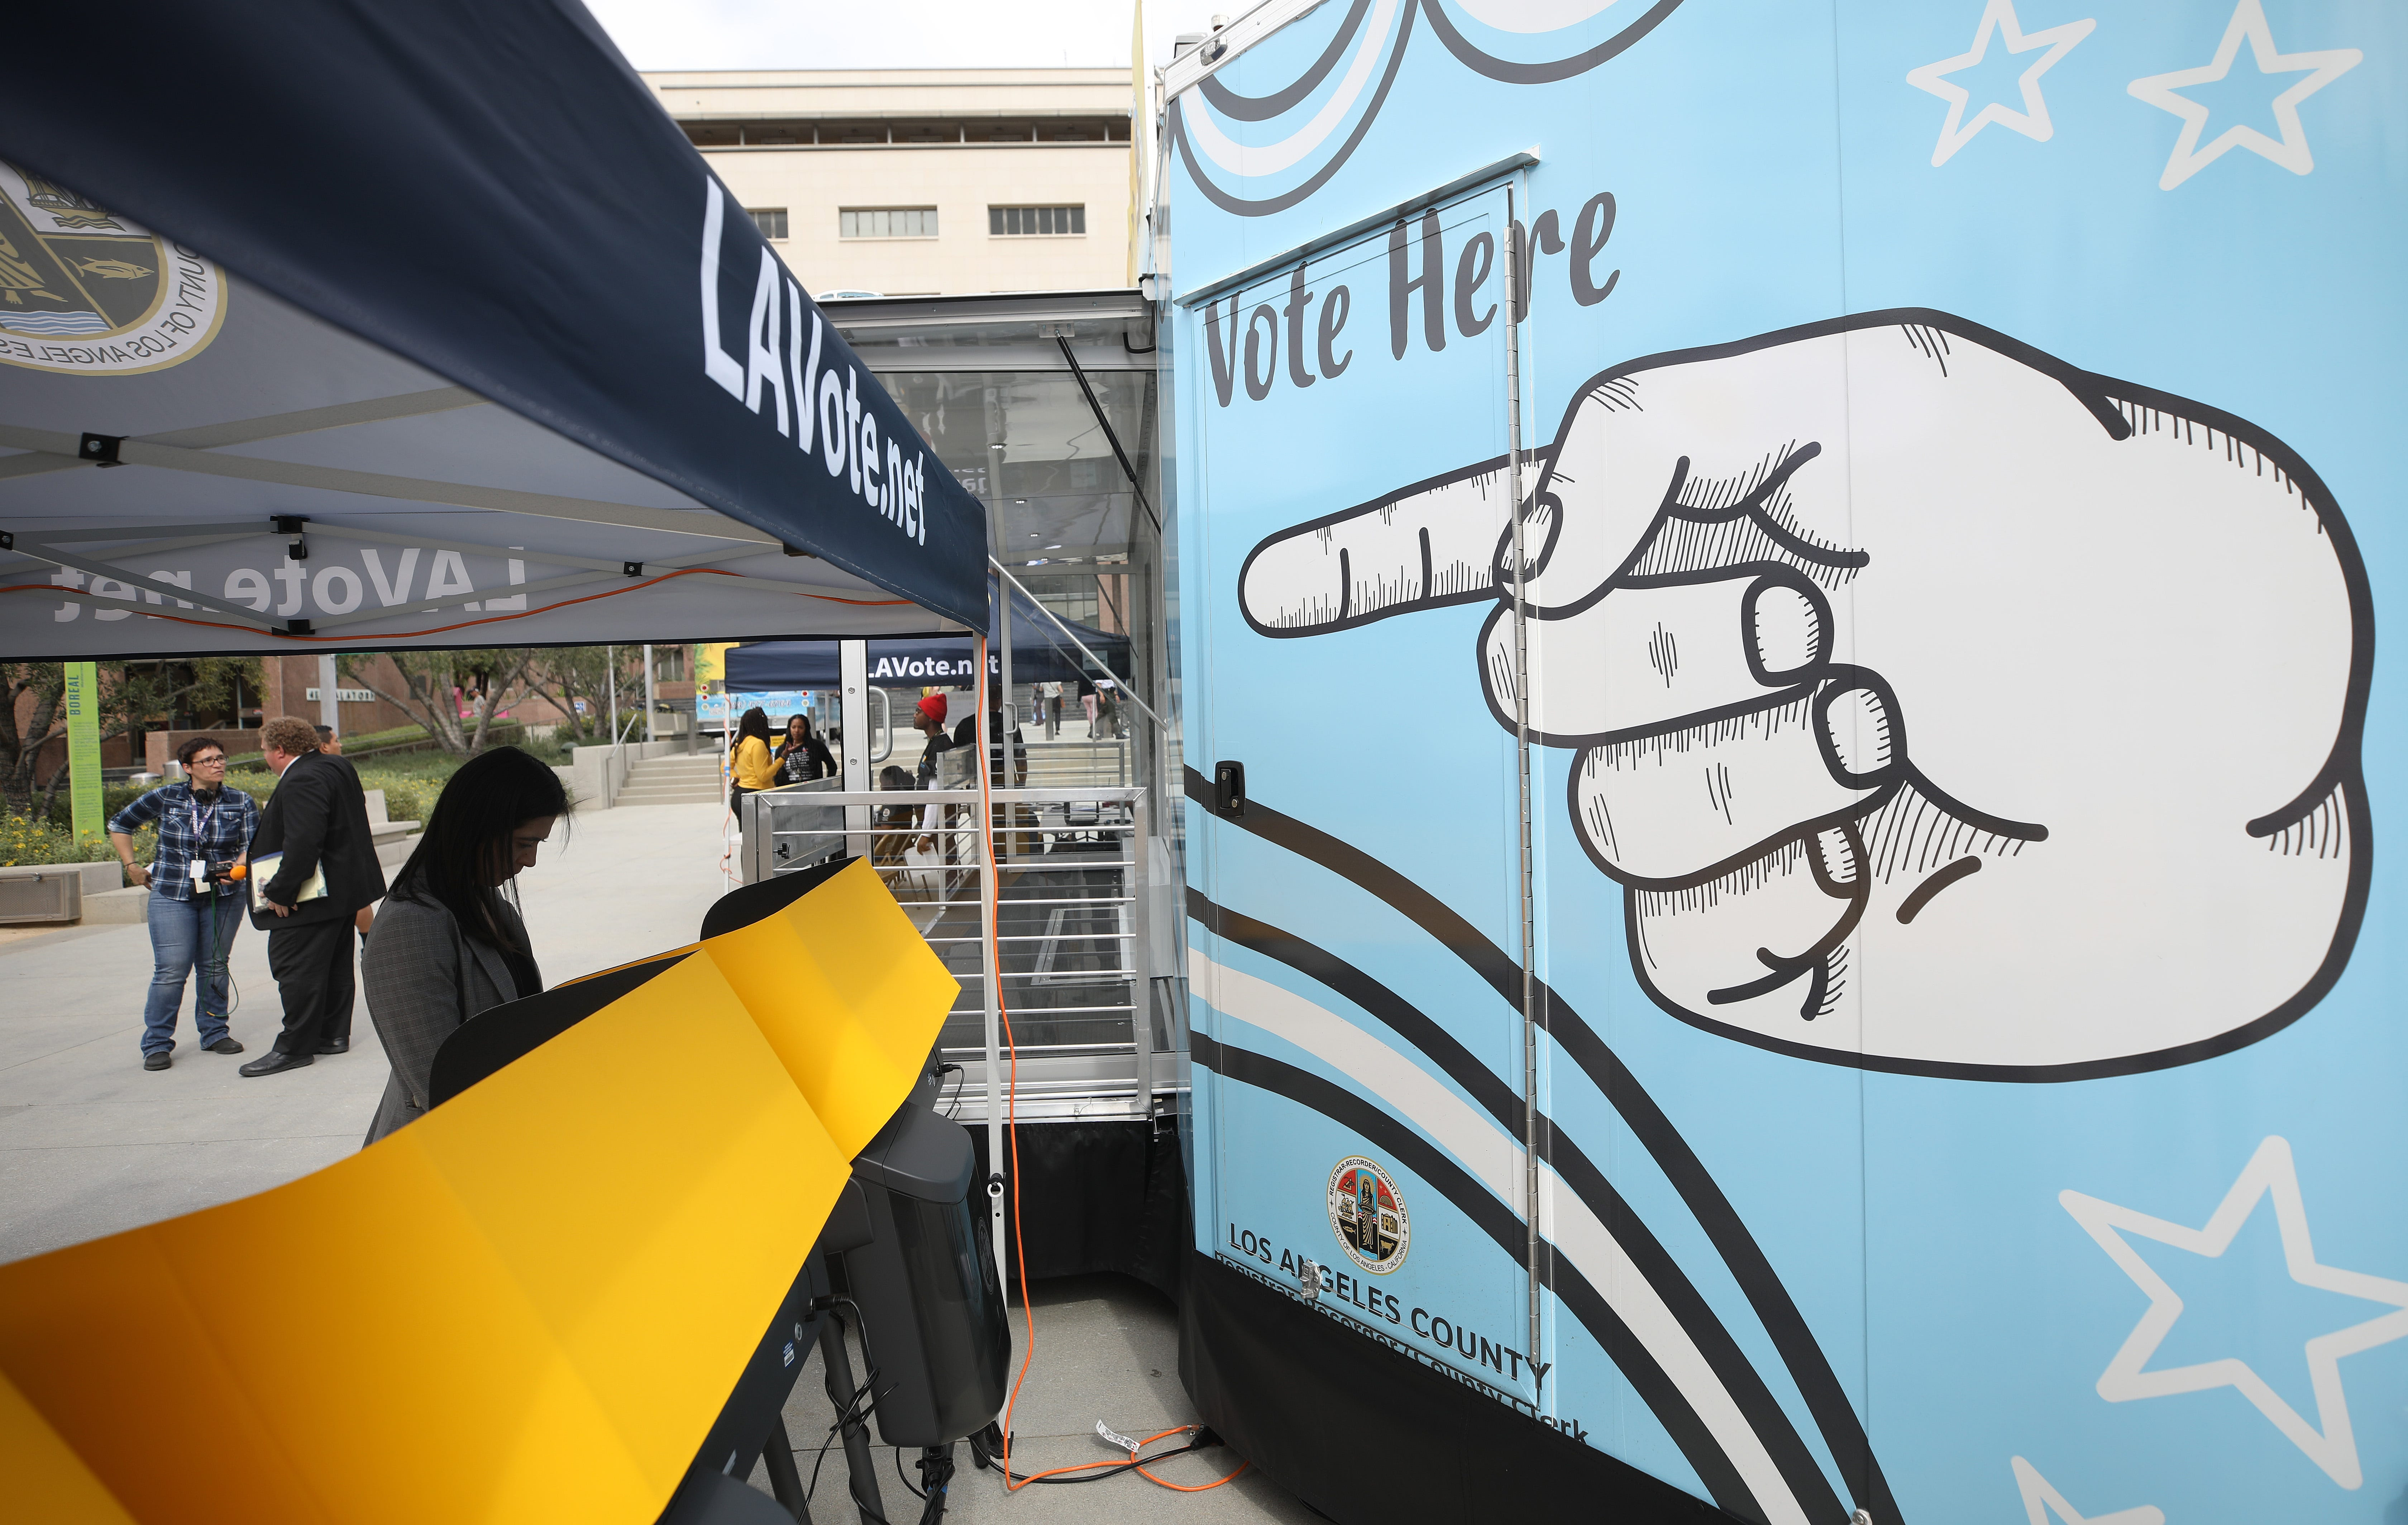 A voter prepares her ballot in a voting booth during early voting for the California presidential primary election at a new L.A. County Mobile Vote Center